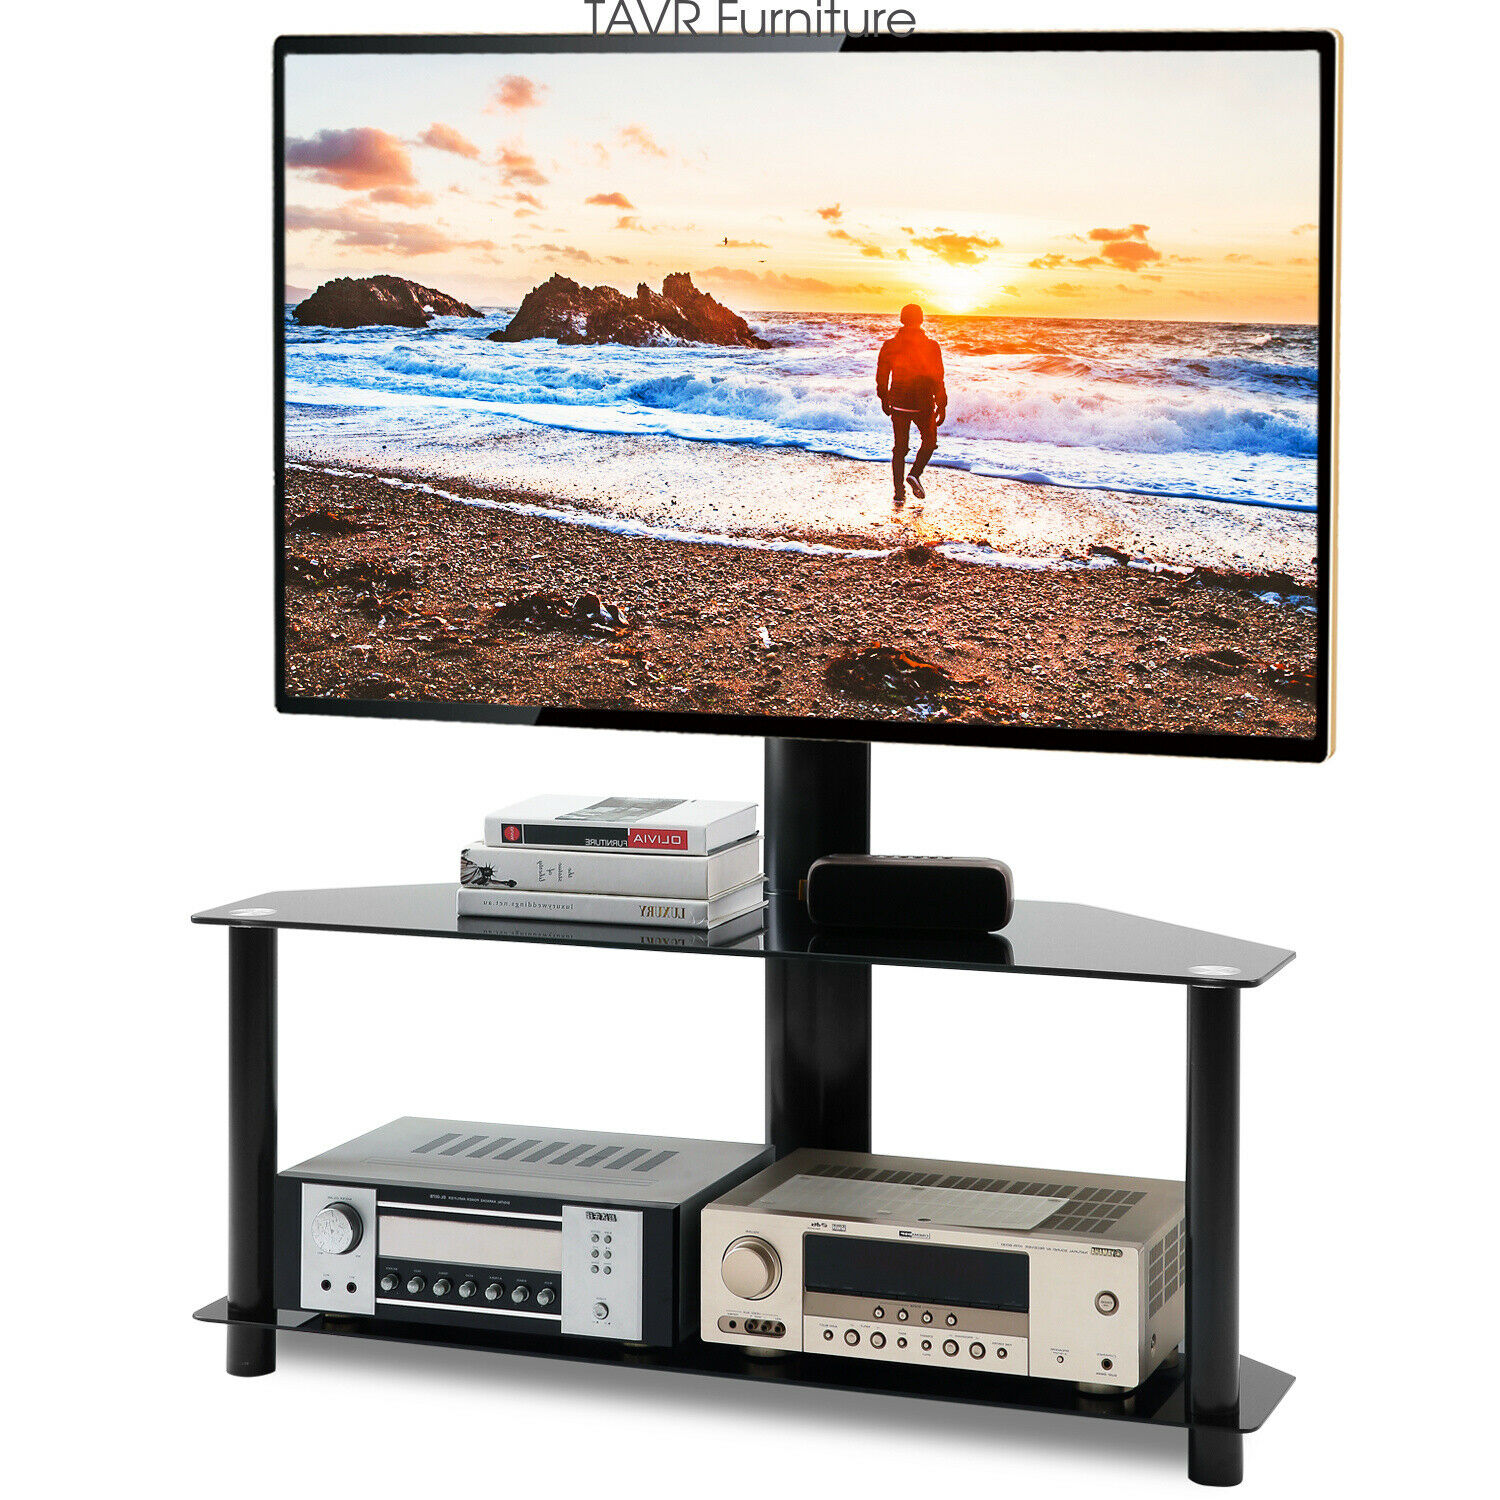 Universal Table Top TV Stand for 32 to 60 inch TVs with 50 Degree Swivel Vintage